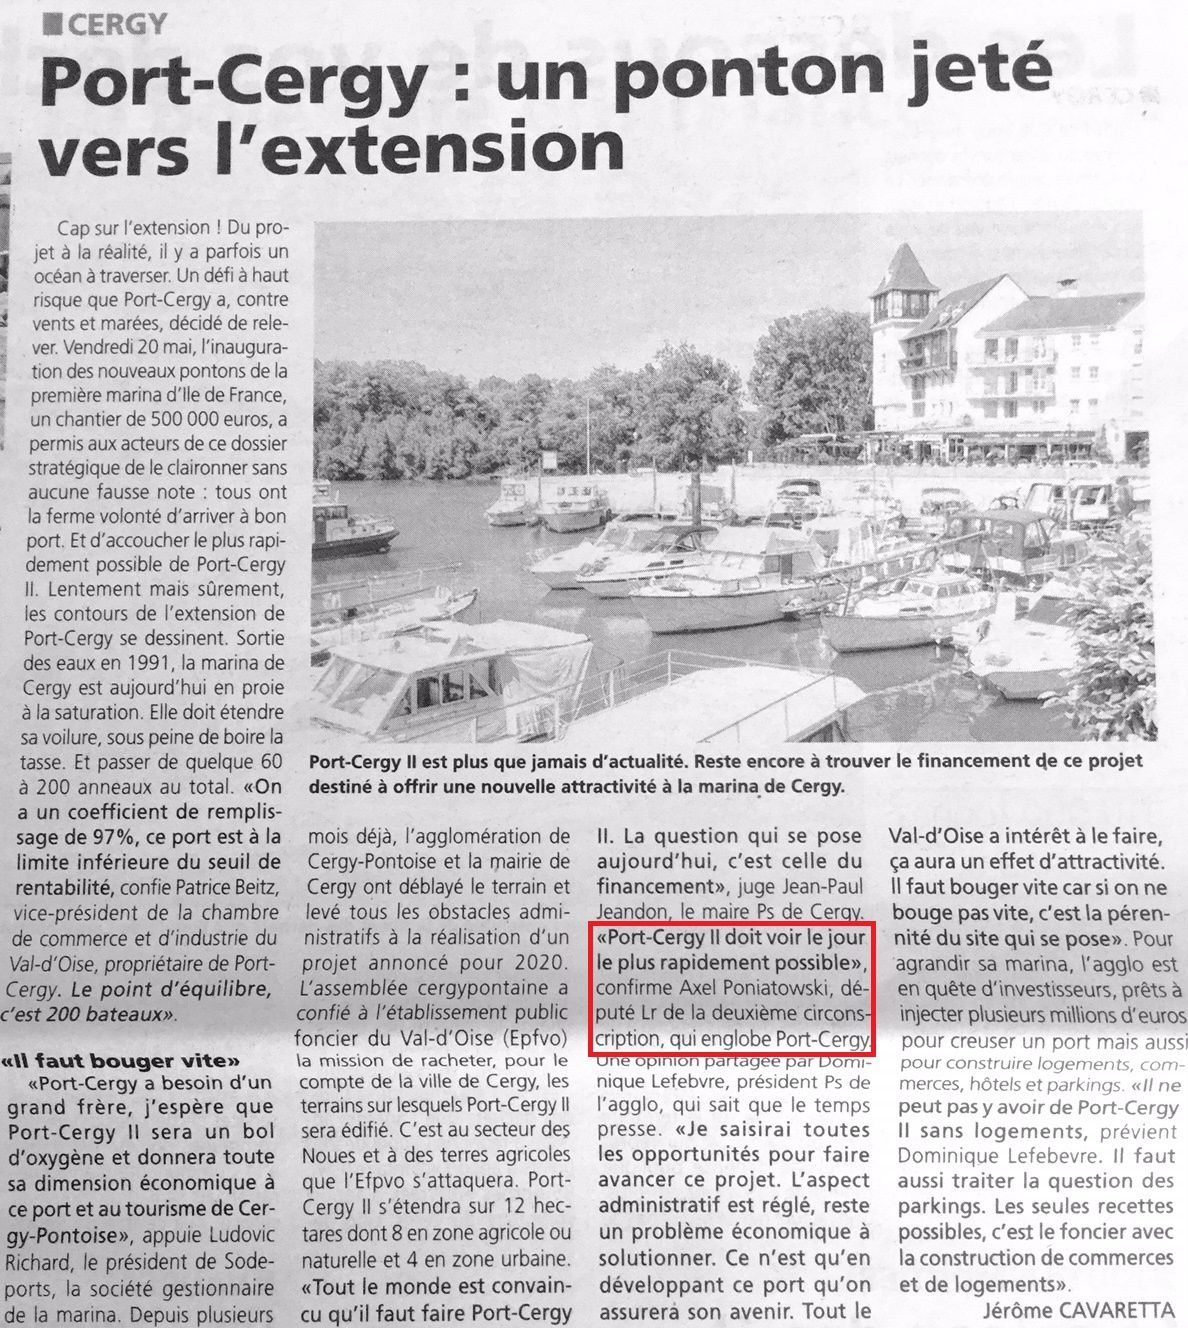 Vers l'extension de Port-Cergy (La Gazette)